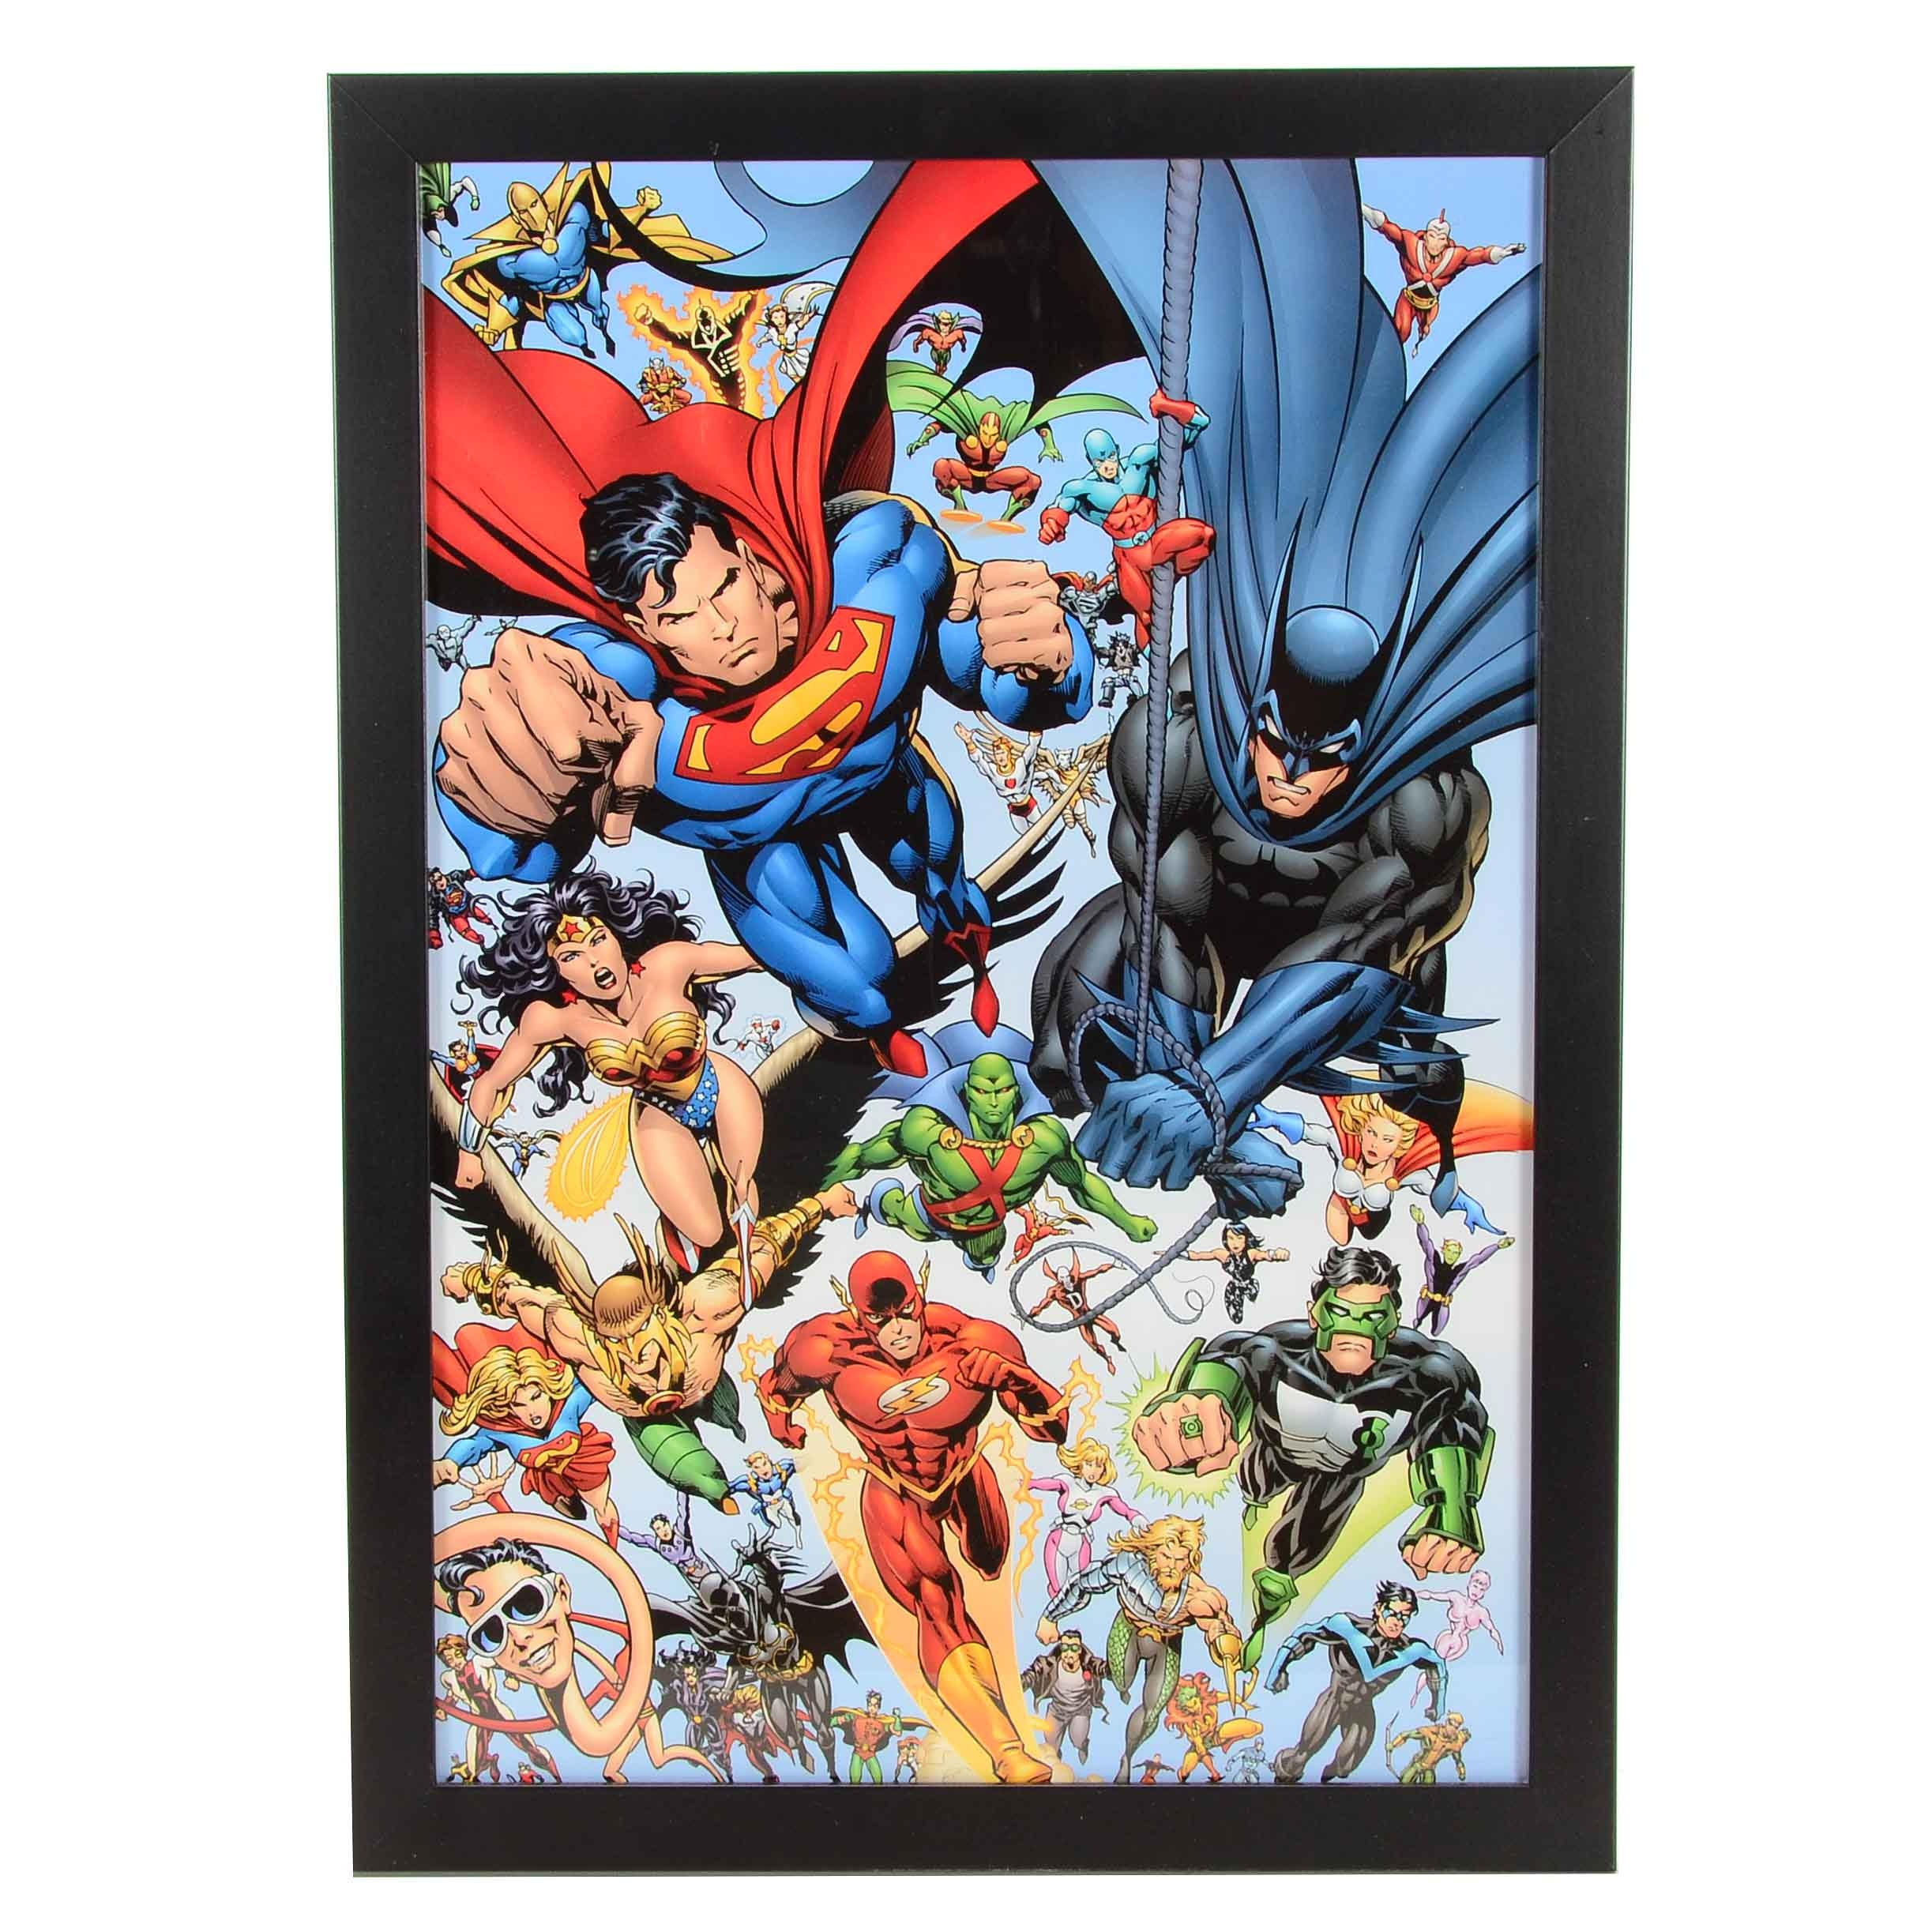 Framed DC Comics Offset Lithograph Poster